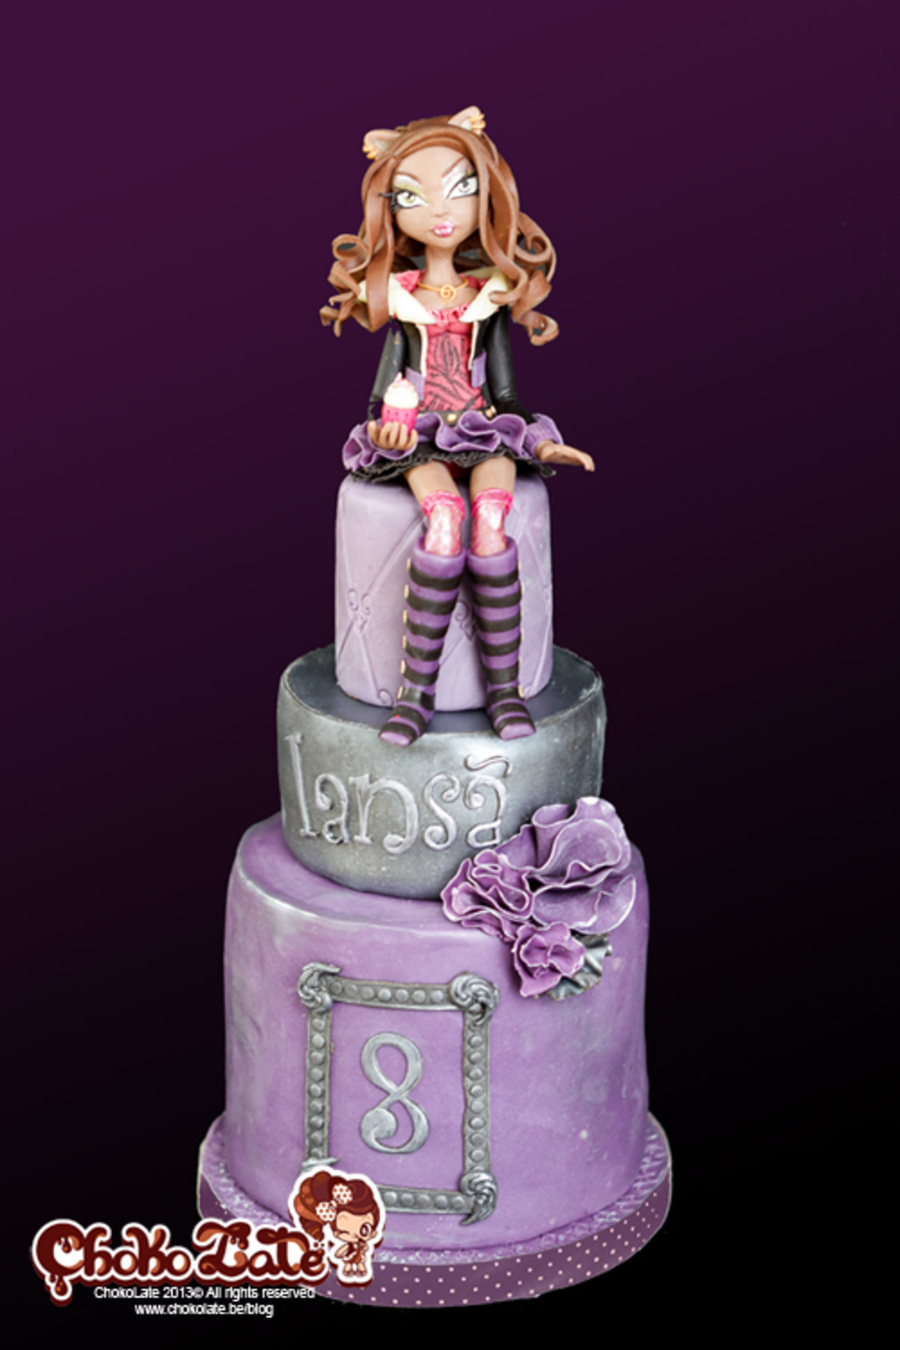 Awe Inspiring Monster High Birthday Cake Clawdeen Cakecentral Com Funny Birthday Cards Online Inifofree Goldxyz